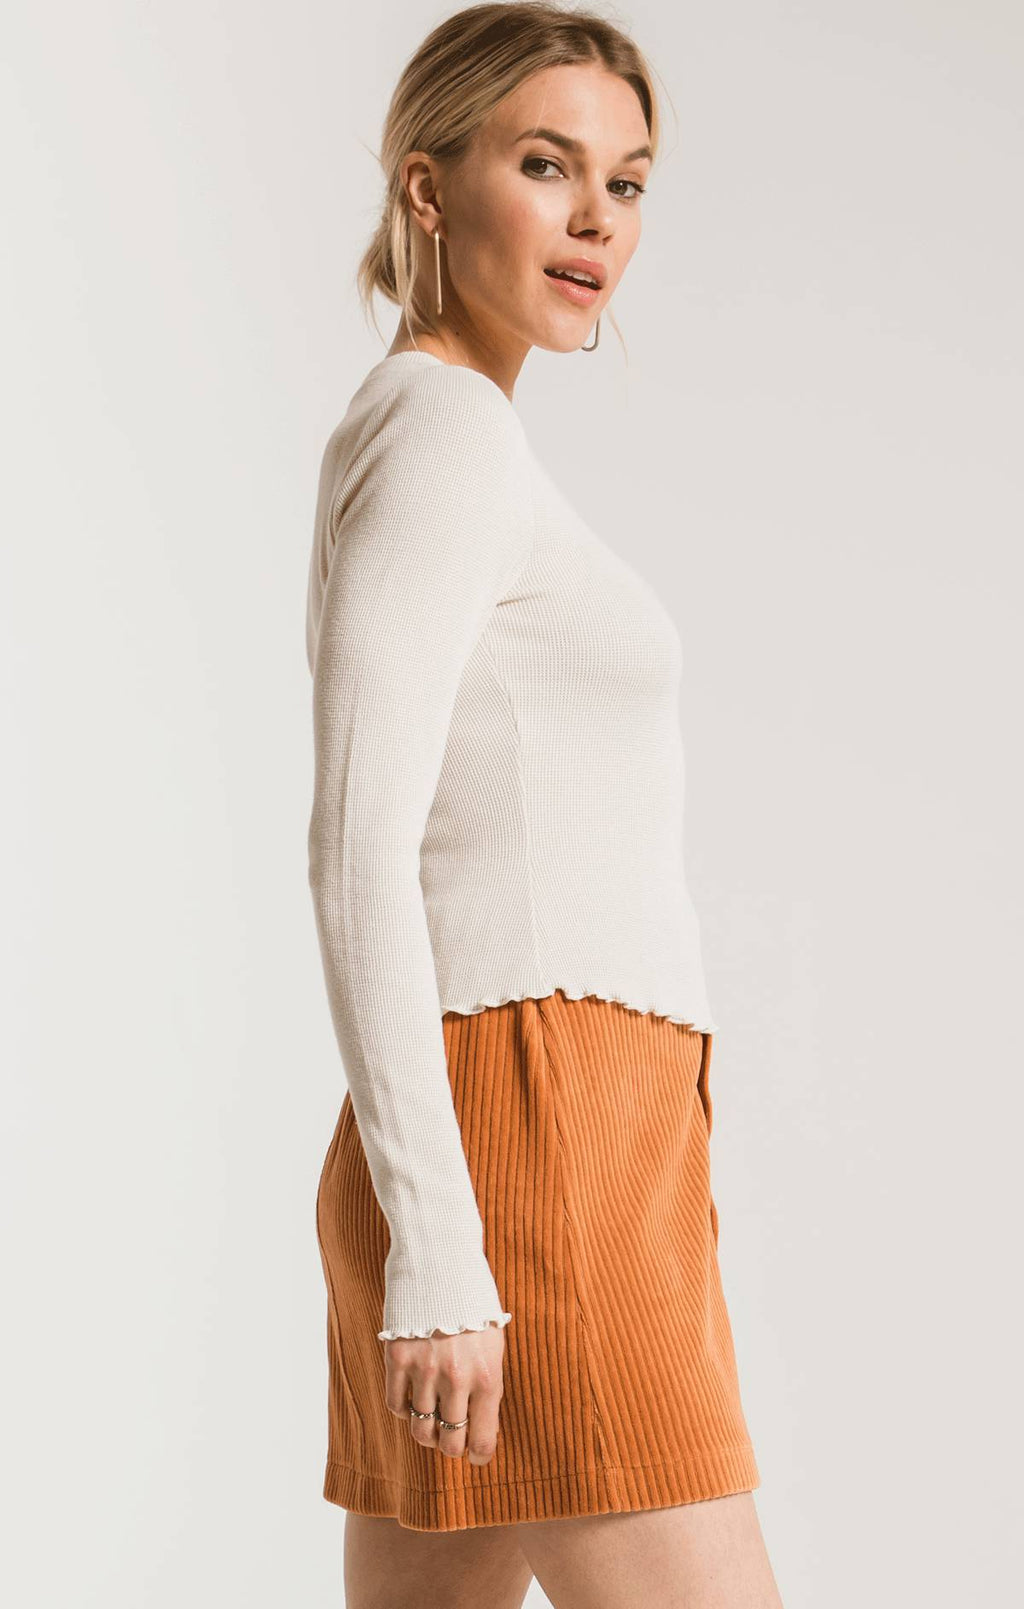 THE FITTED THERMAL LONG SLEEVE TOP